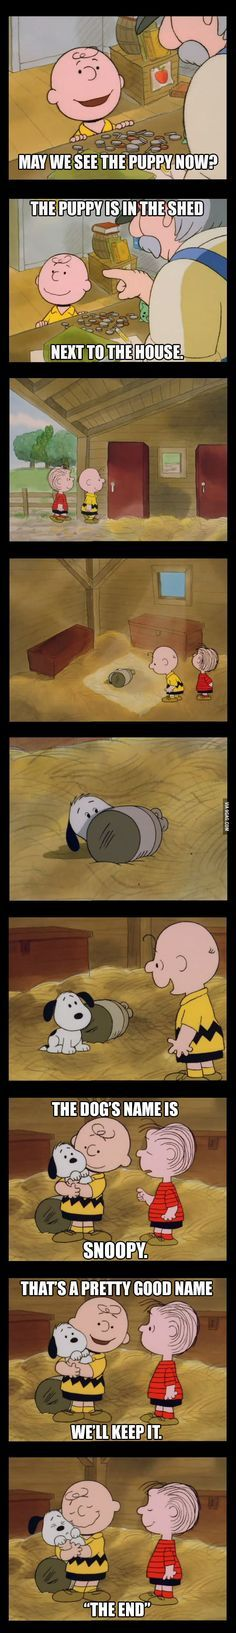 Epic moment of childhood. Must read for Snoopy fans!